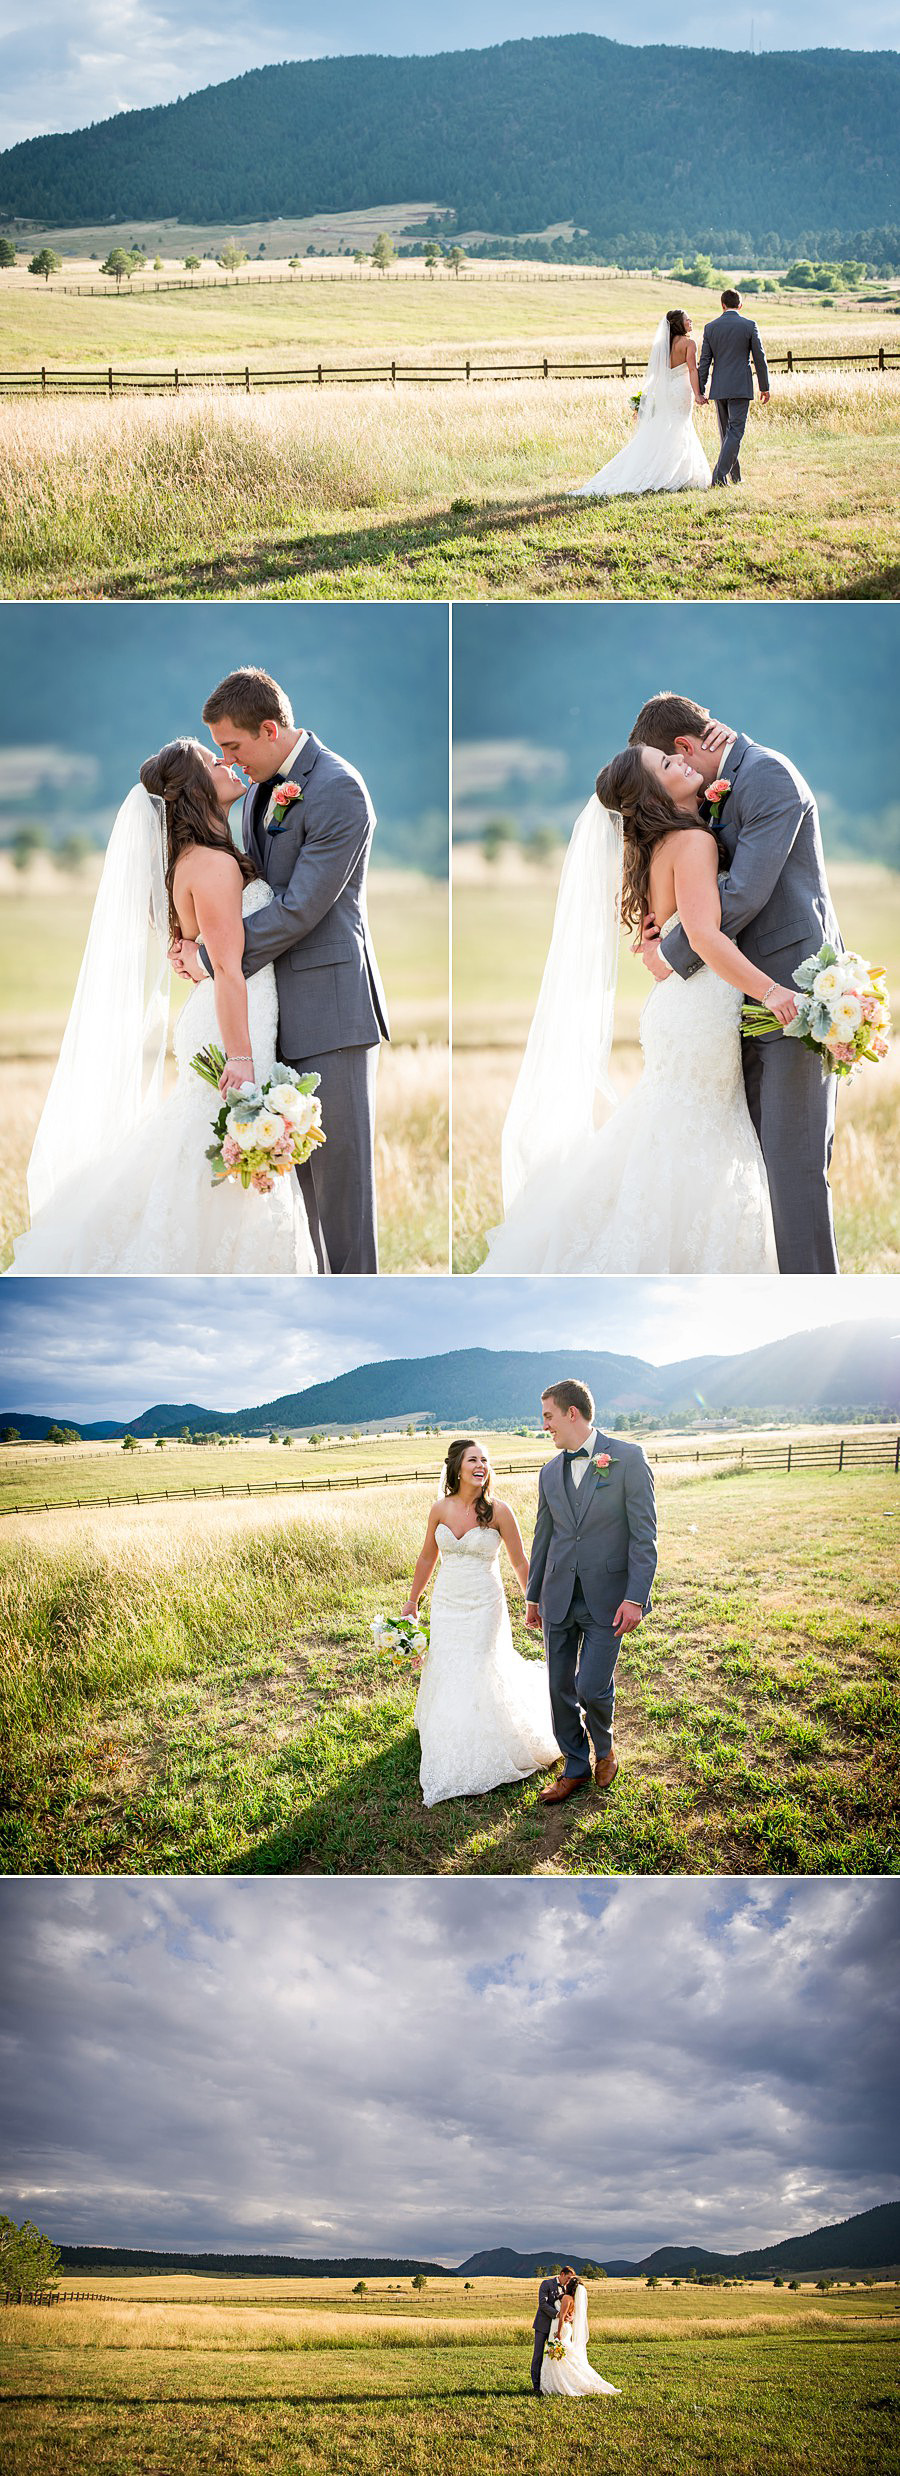 Trey's Vista bride and groom photos at Spruce Mountain Ranch